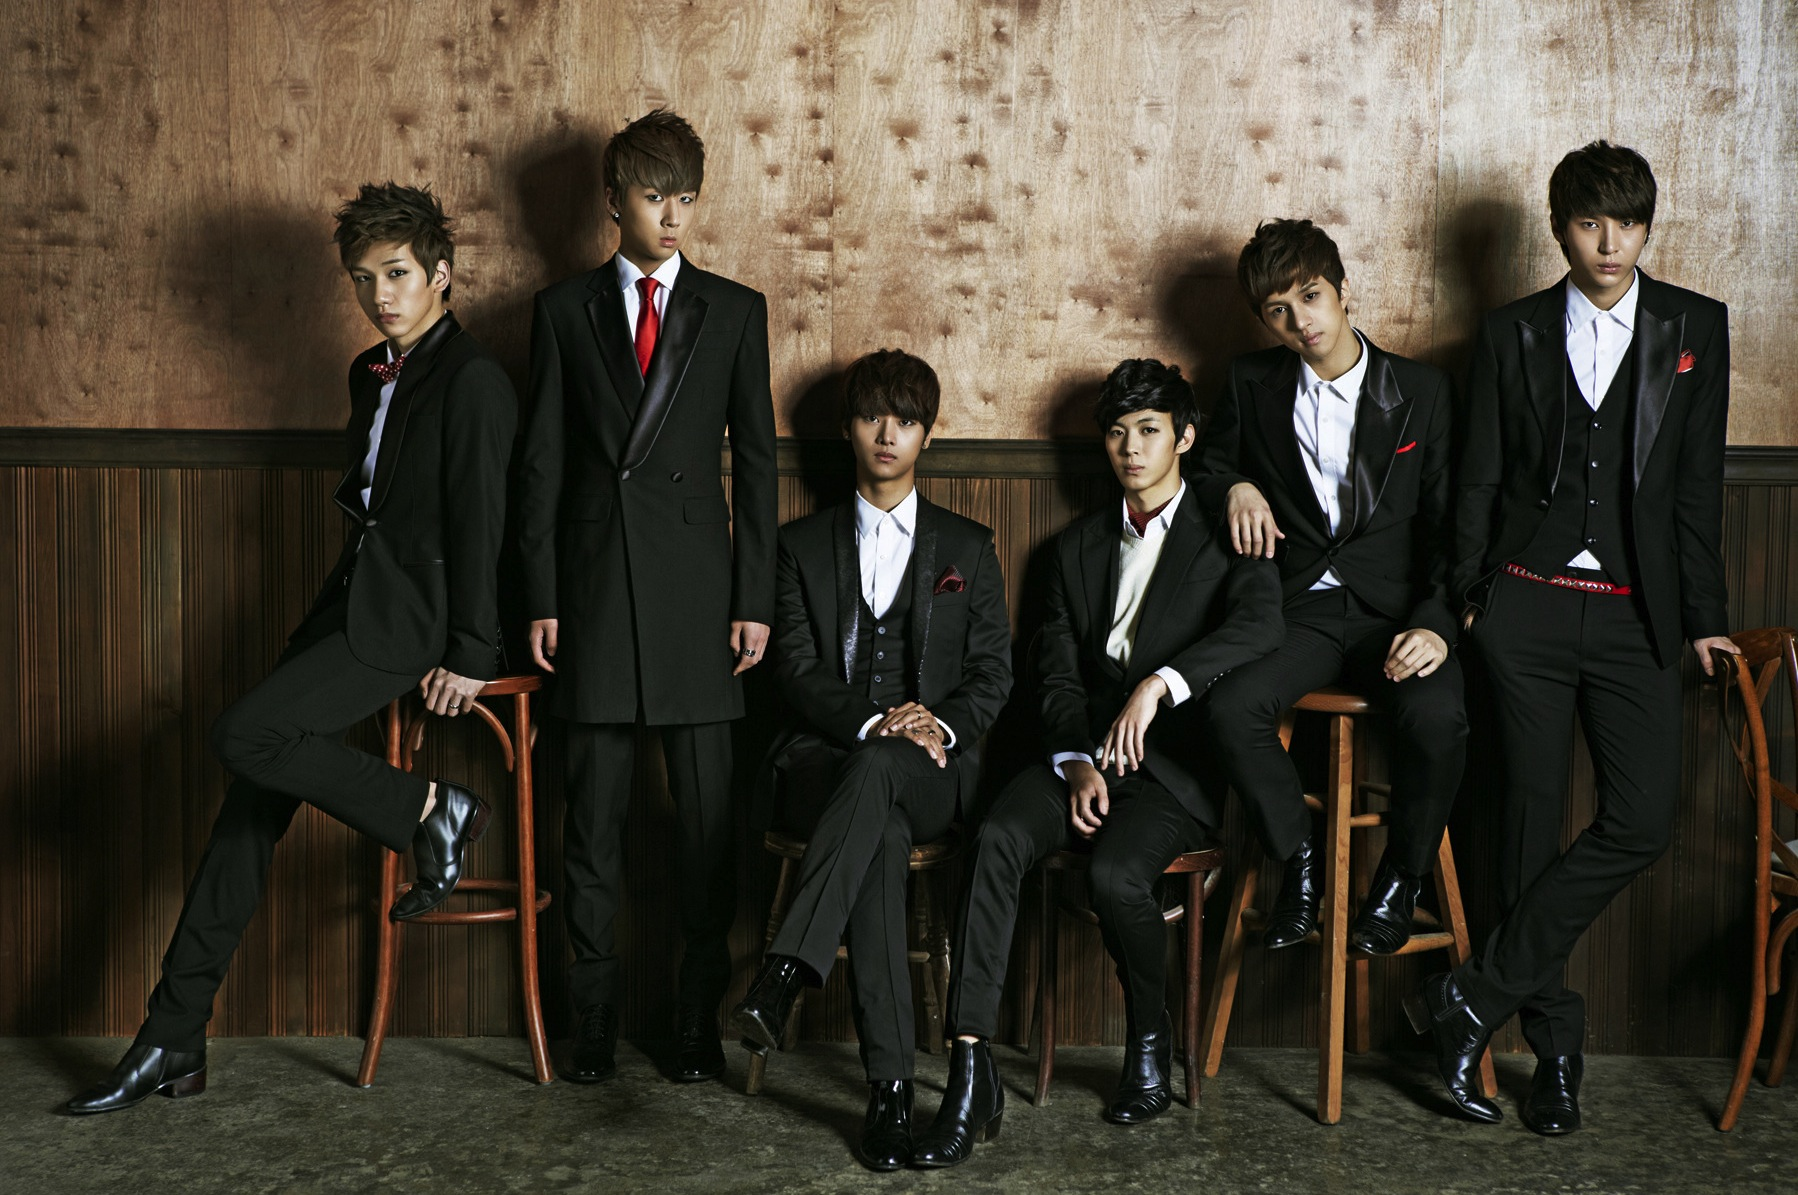 jellyfish entertainment issues apology to vixx fans